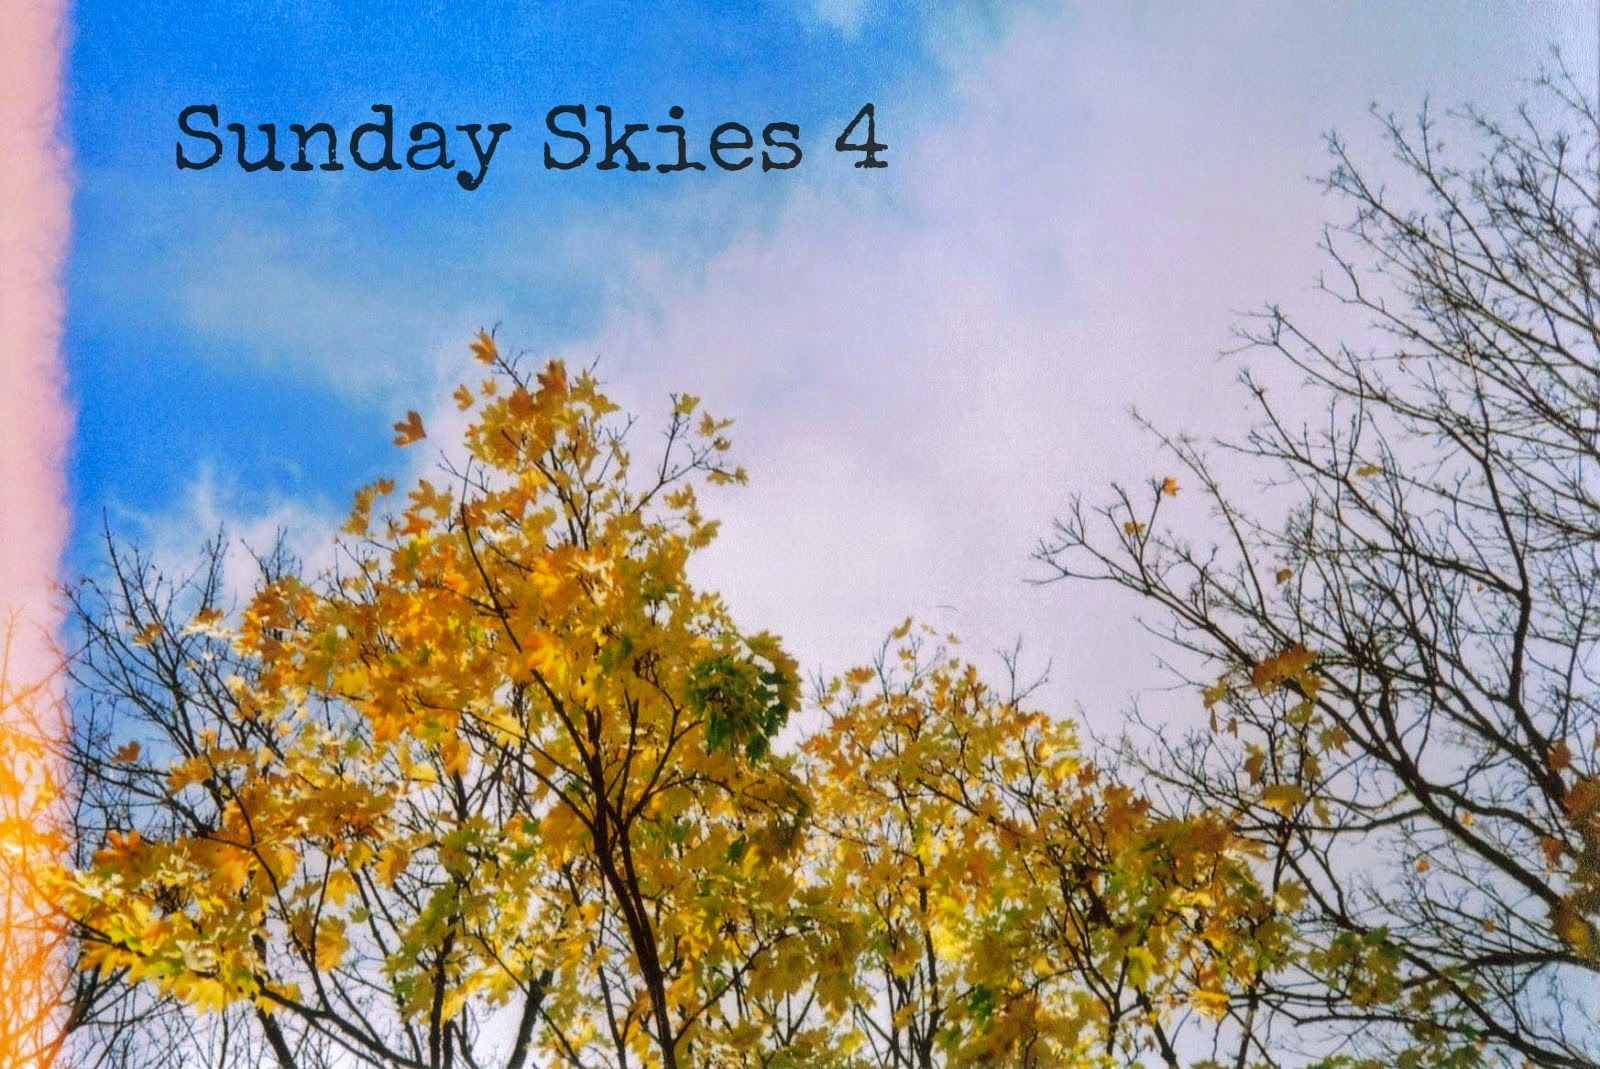 http://talesonfilm.blogspot.co.uk/2014/04/sunday-skies_13.html